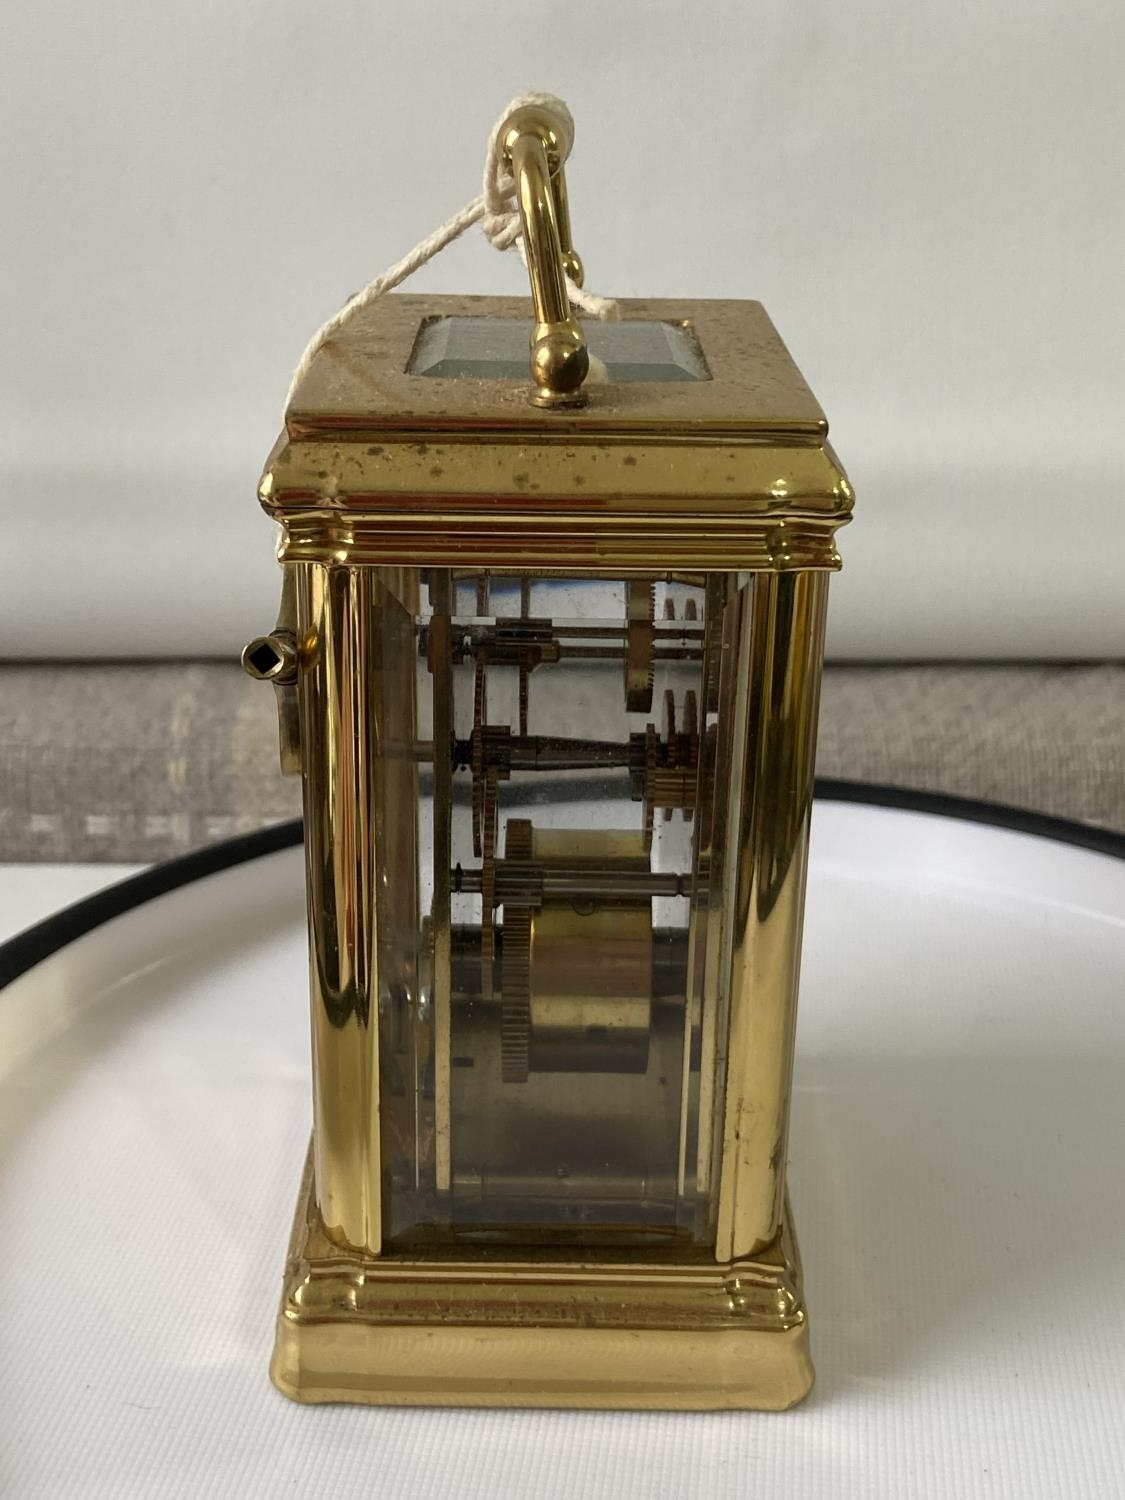 Antique heavy brass carriage clock [Rapport London] [MVT No 1800] in a working condition and with - Image 4 of 12